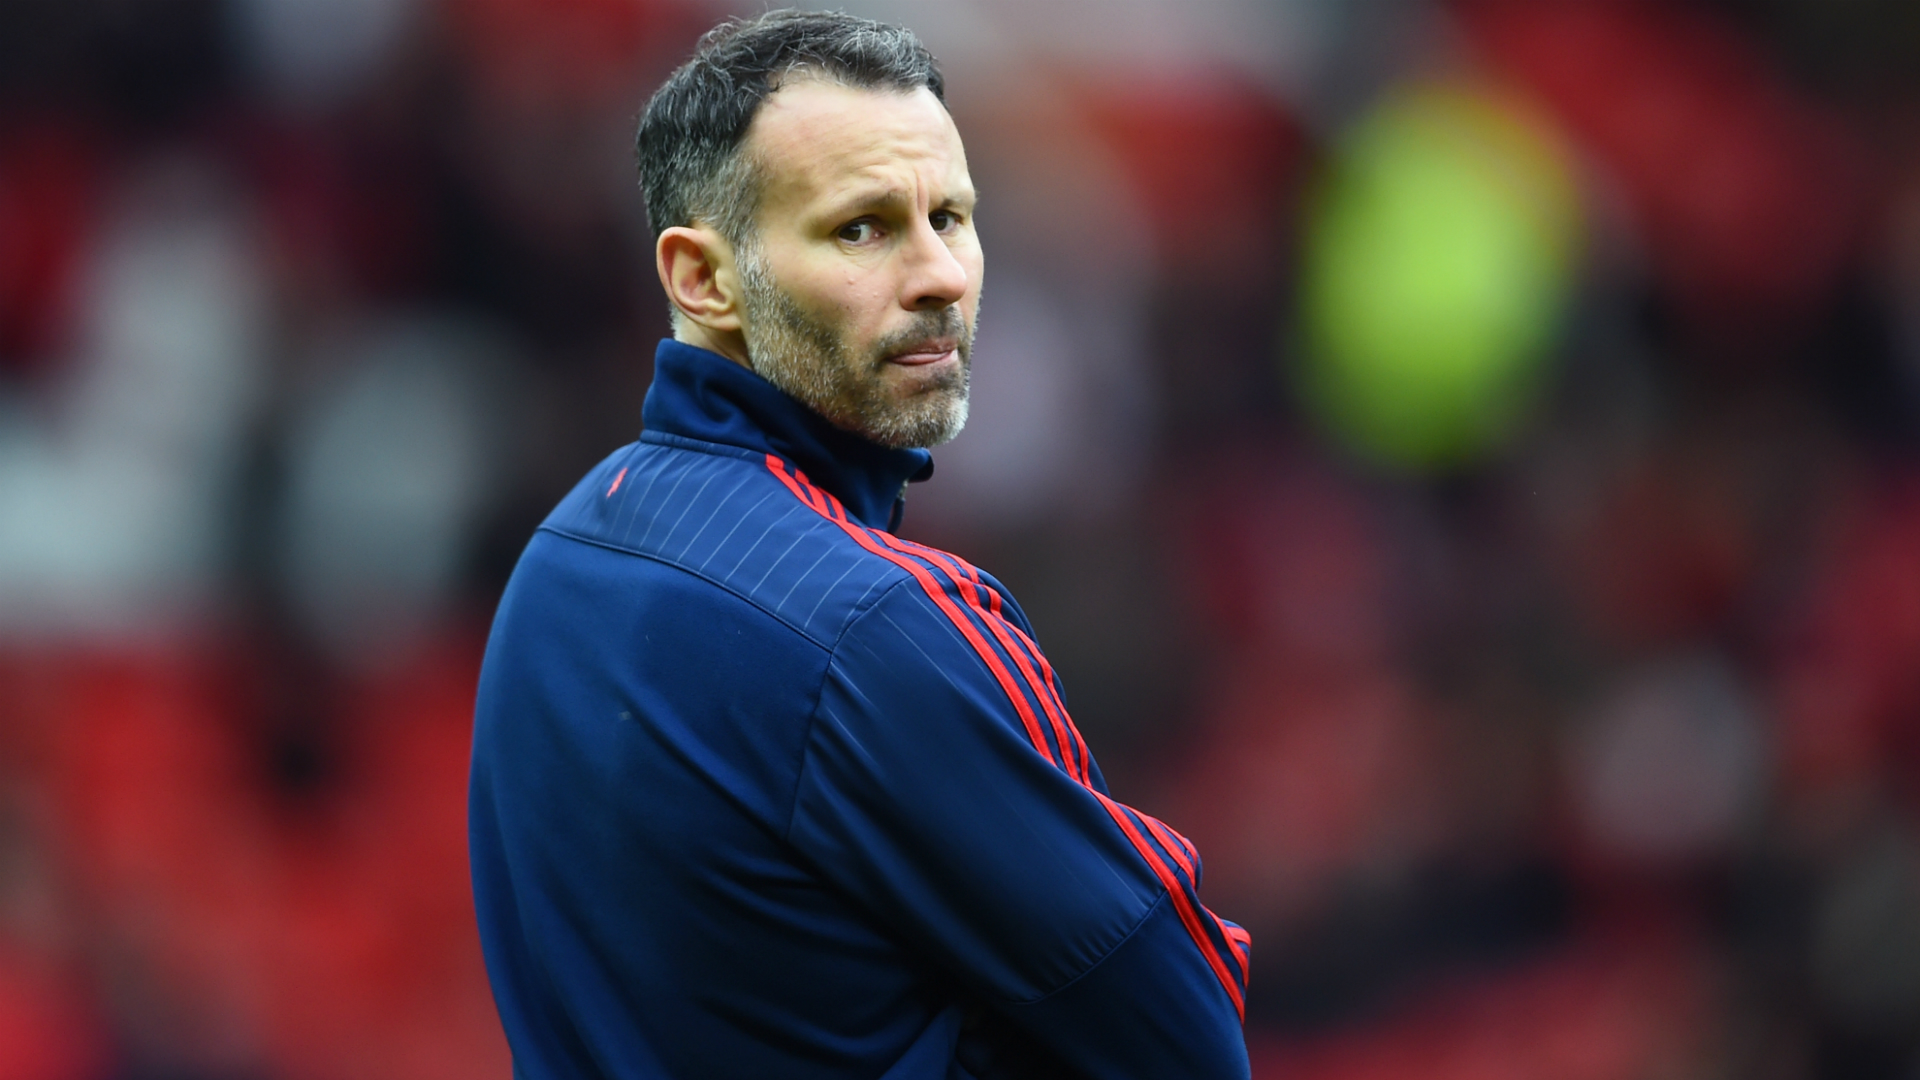 Ryan Giggs charged with assaulting two women, will not coach Wales at Euro 2020